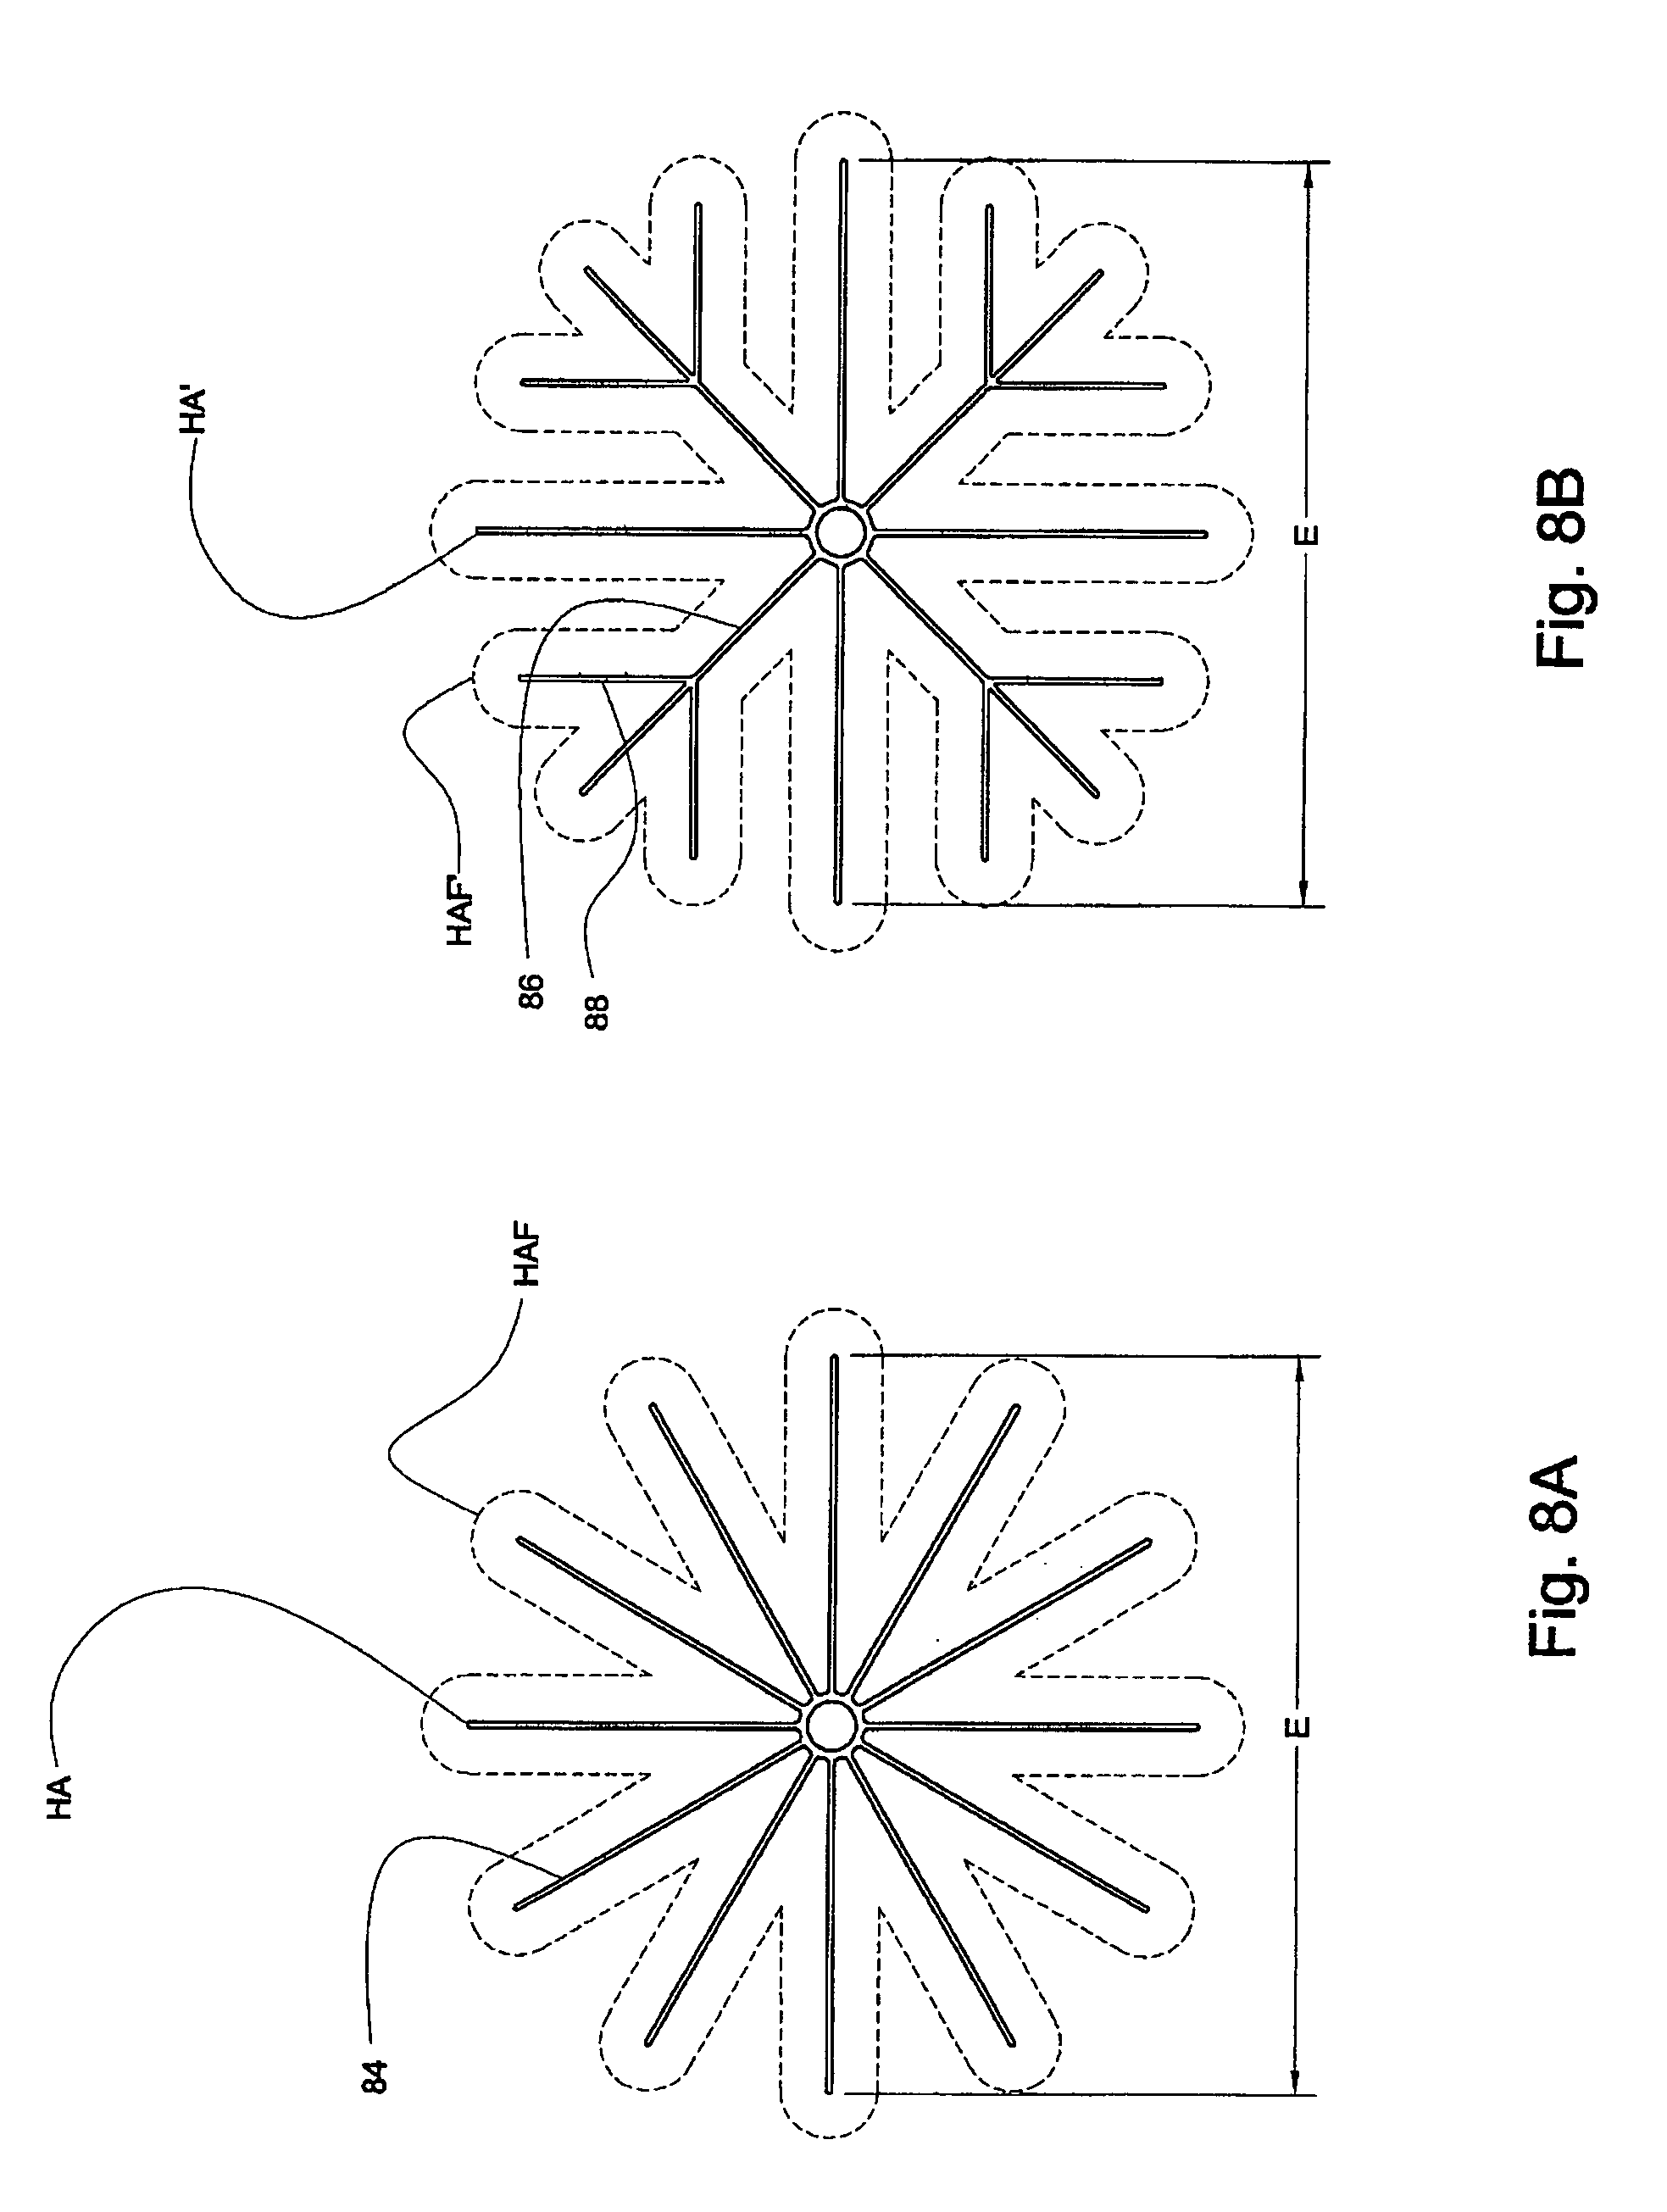 patent us8069678 - heat transfer in the liquefied gas regasification process